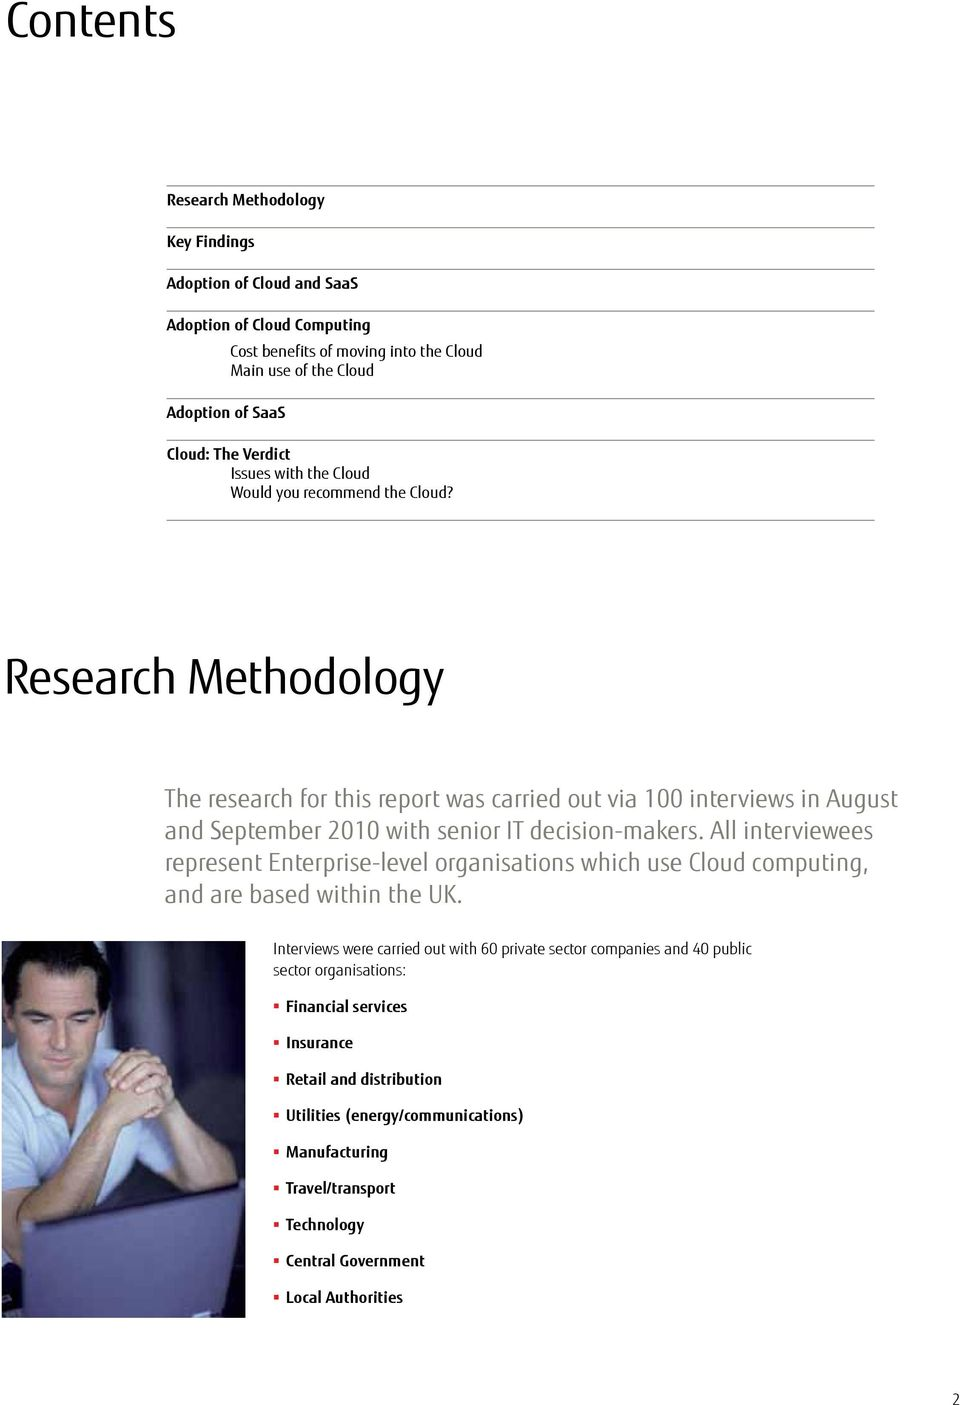 Research Methodology The research for this report was carried out via 100 interviews in August and September 2010 with senior IT decision-makers.